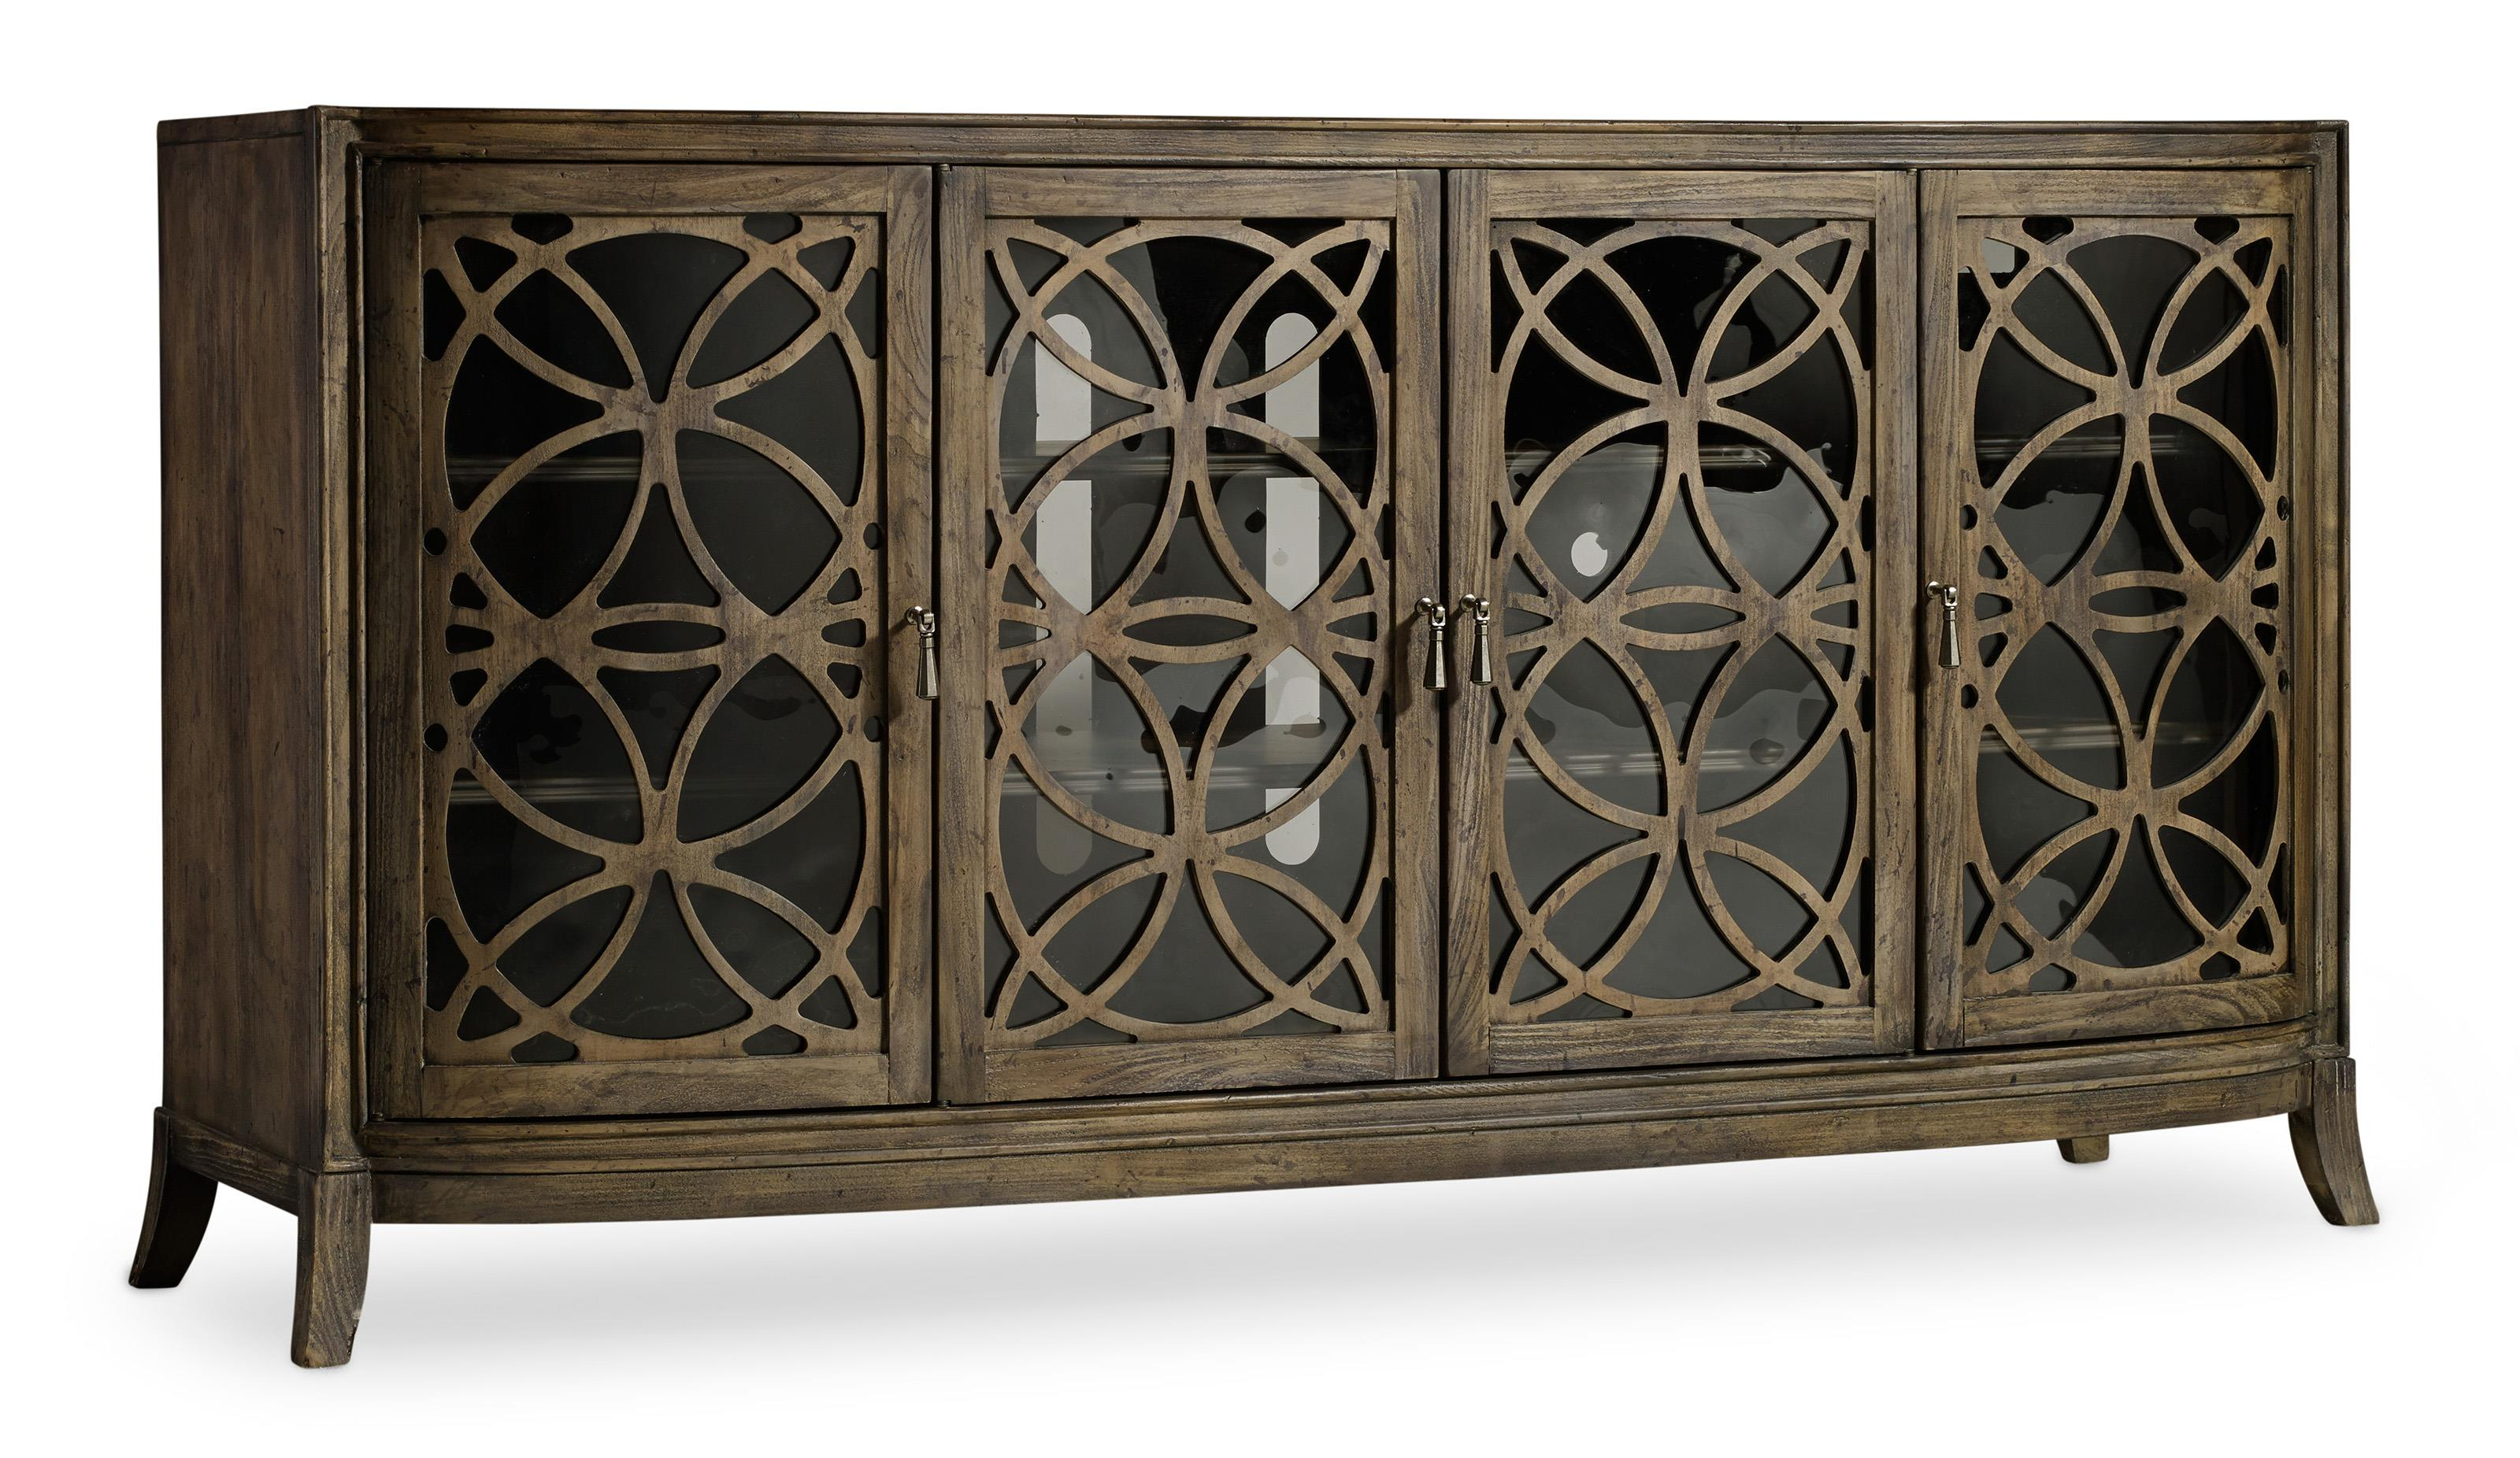 Mélange Sloan Console by Hooker Furniture at Miller Waldrop Furniture and Decor